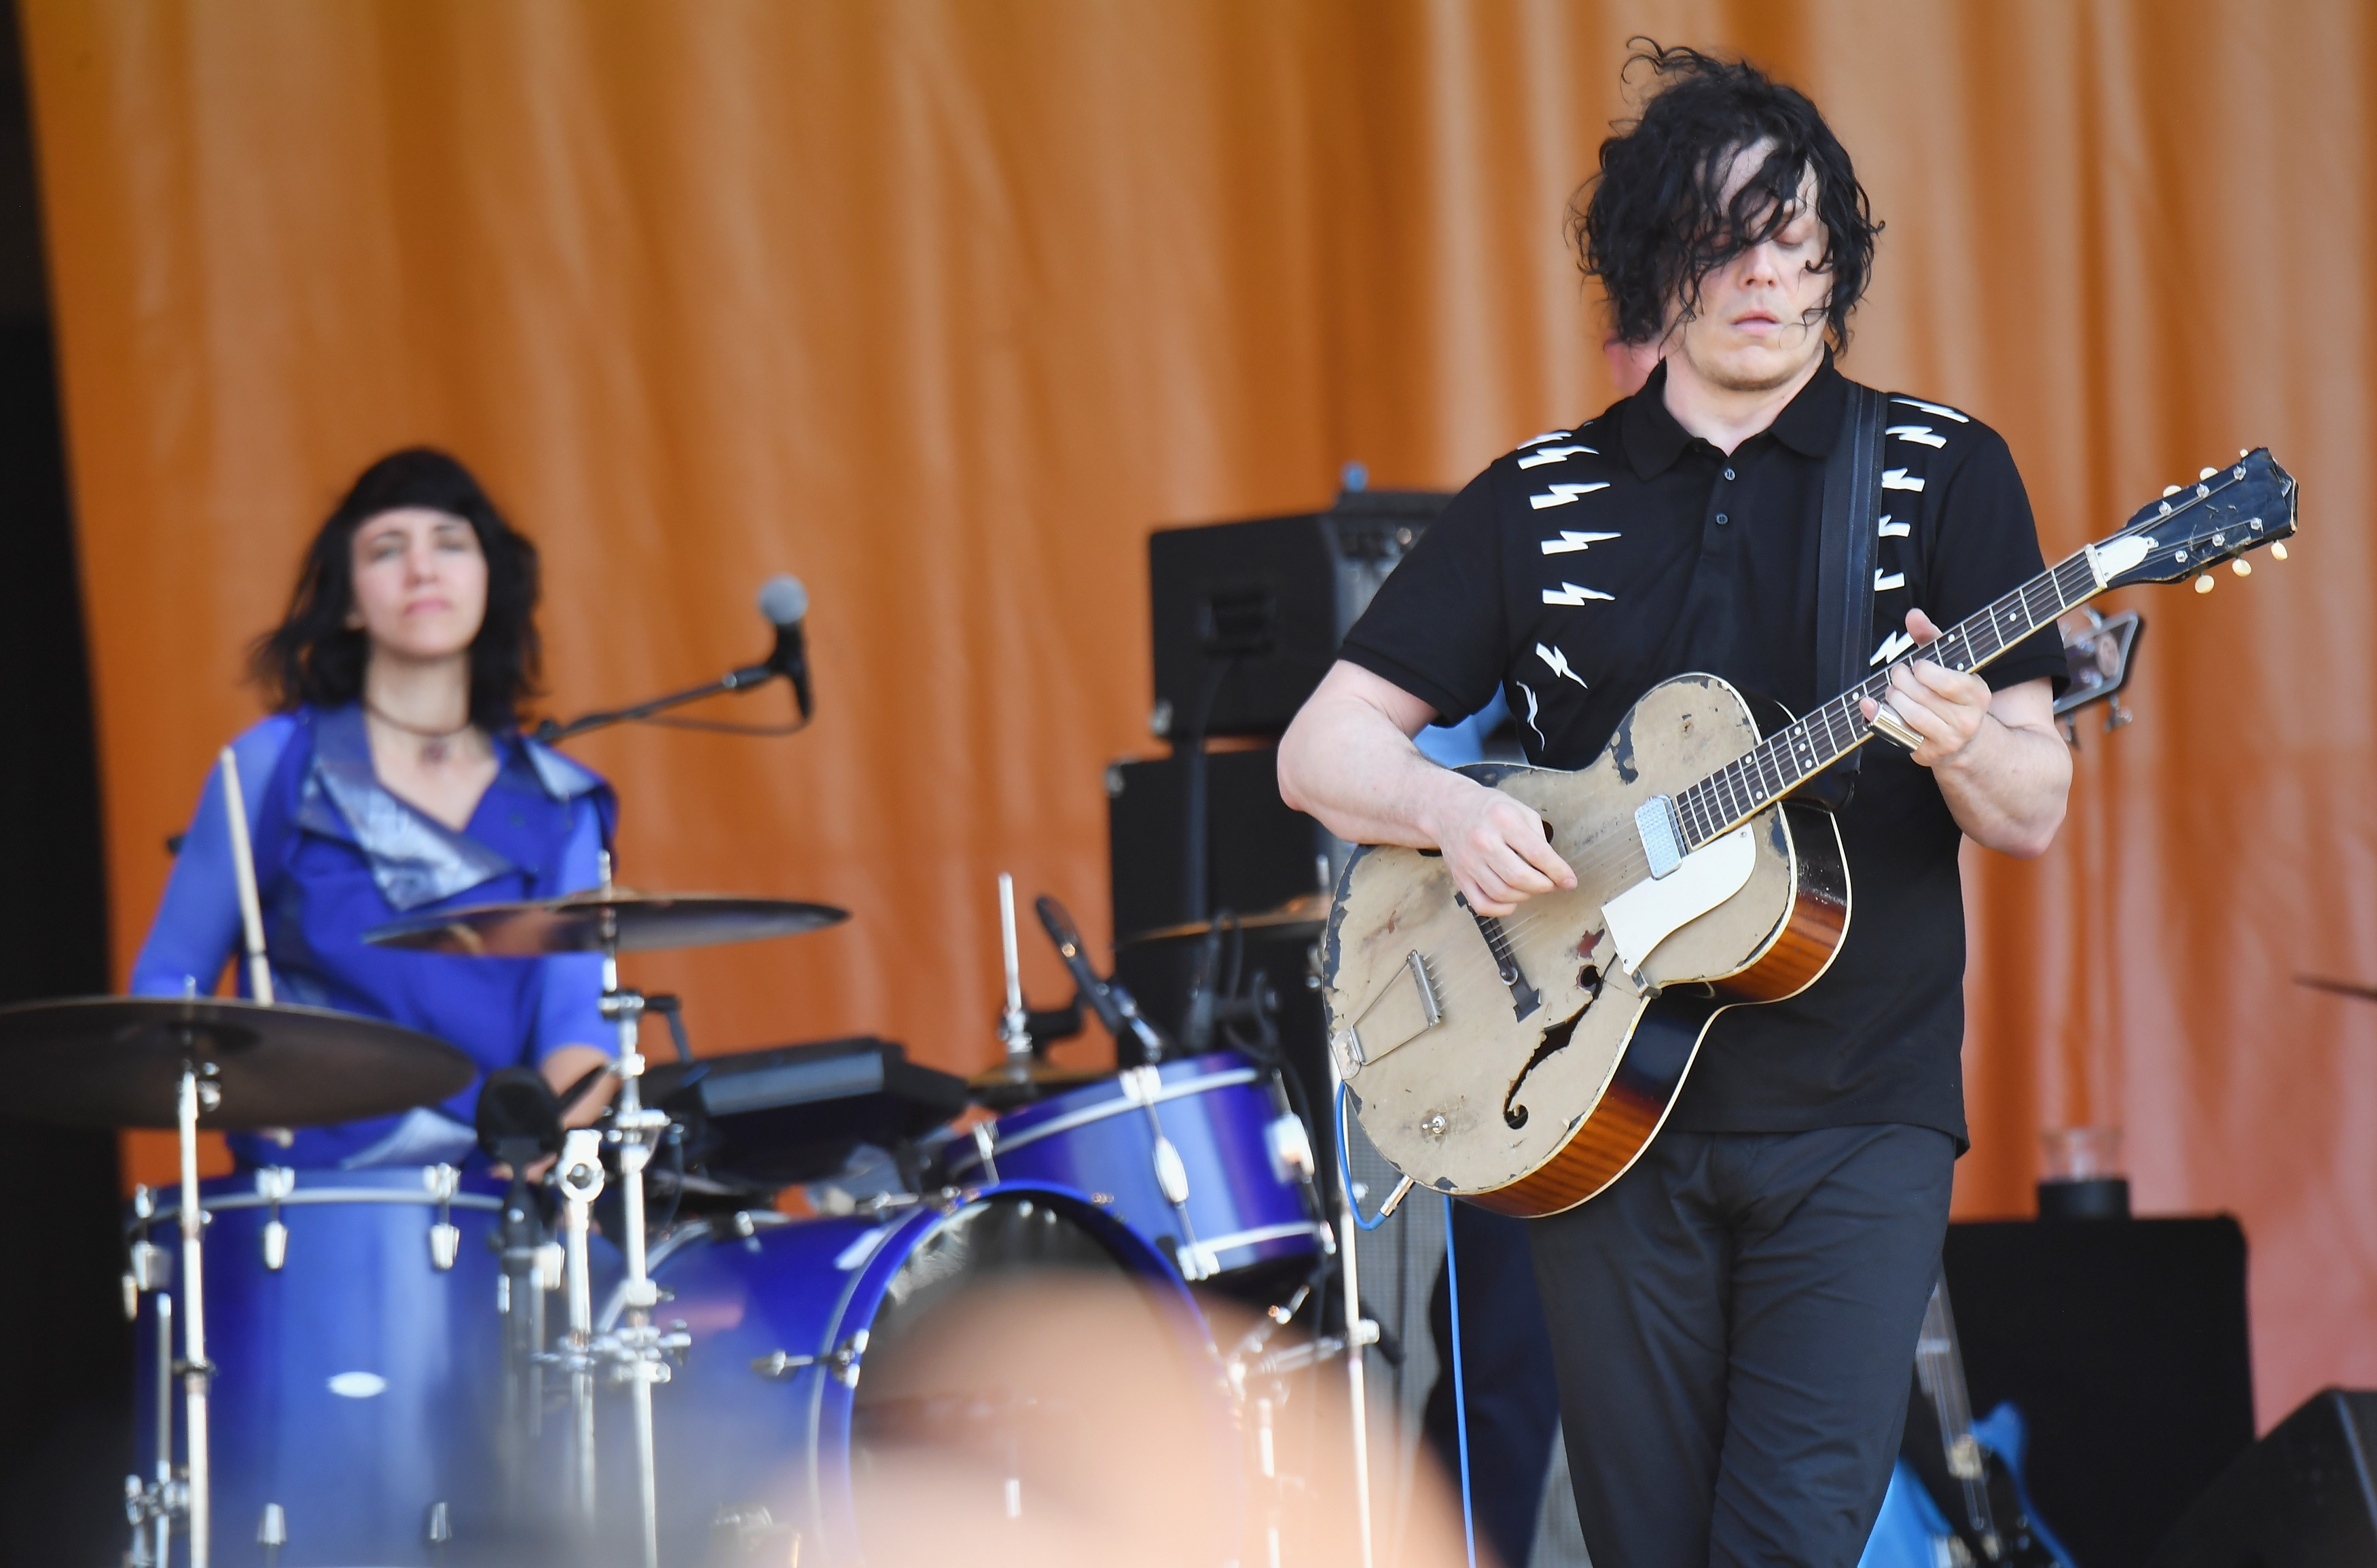 jack-white-tesla-factory-performance-for-workers